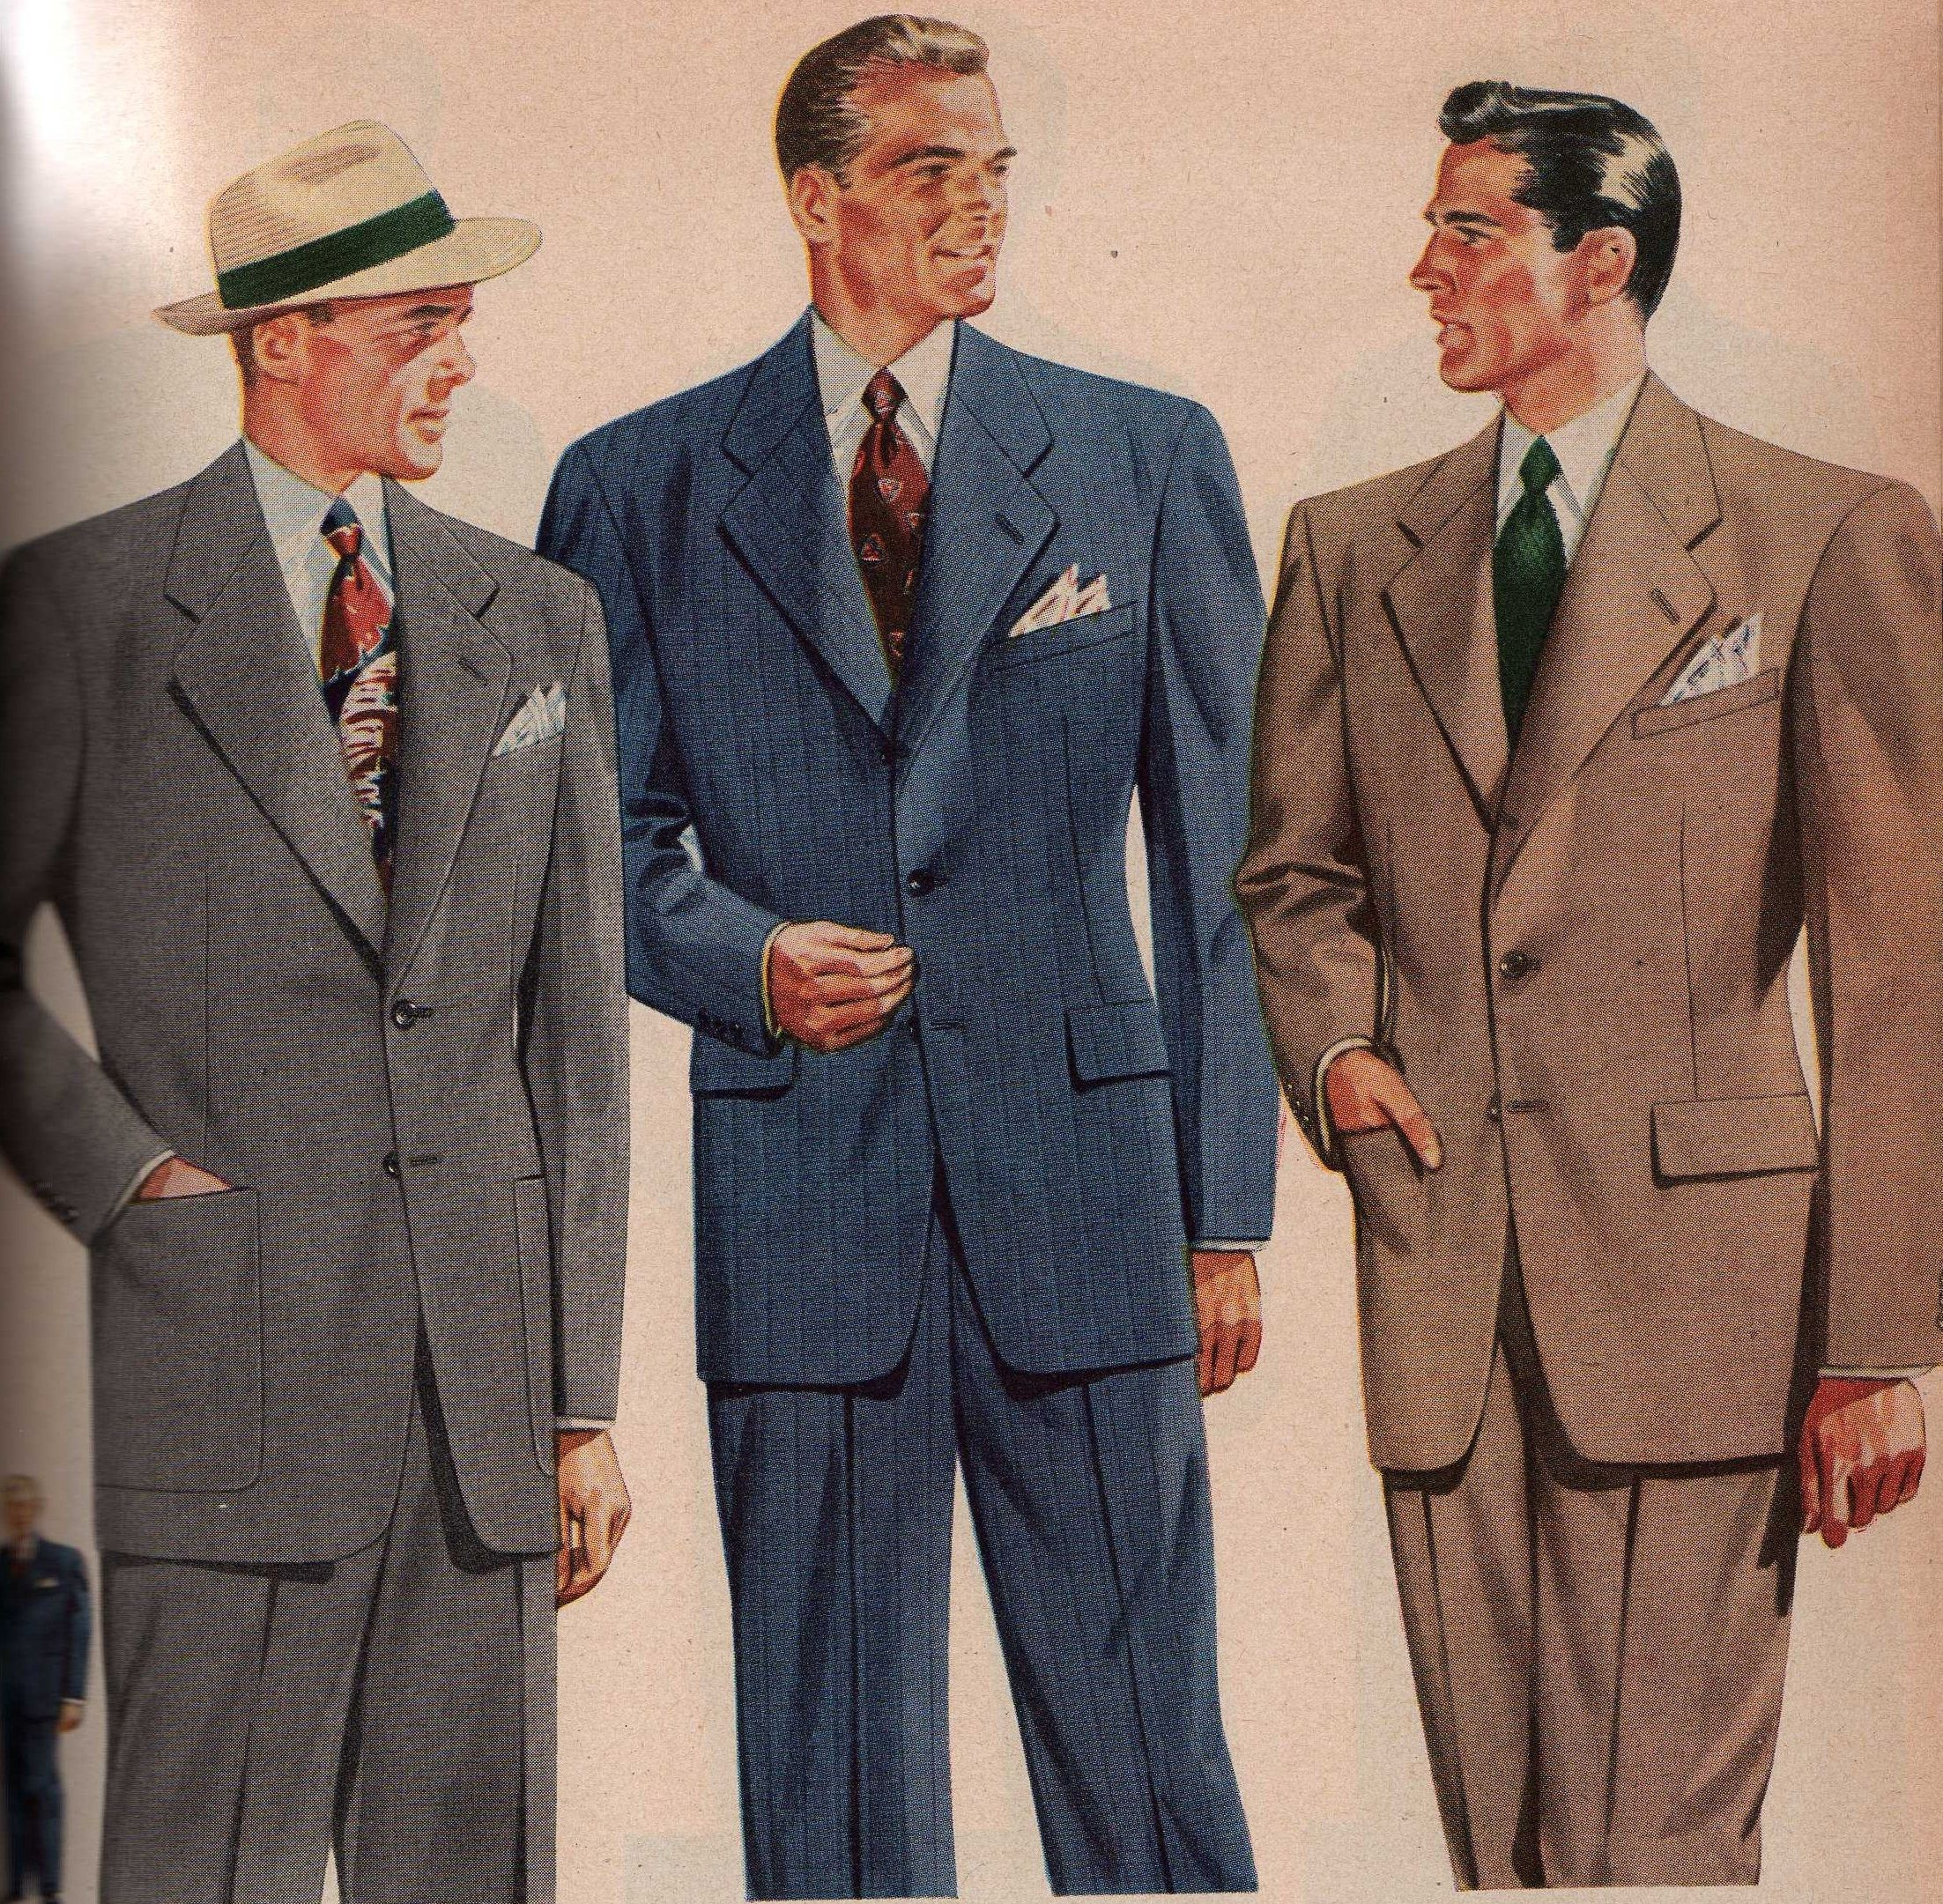 1940s Men's Fashion Clothing Styles | 1940s, 1940s fashion ...